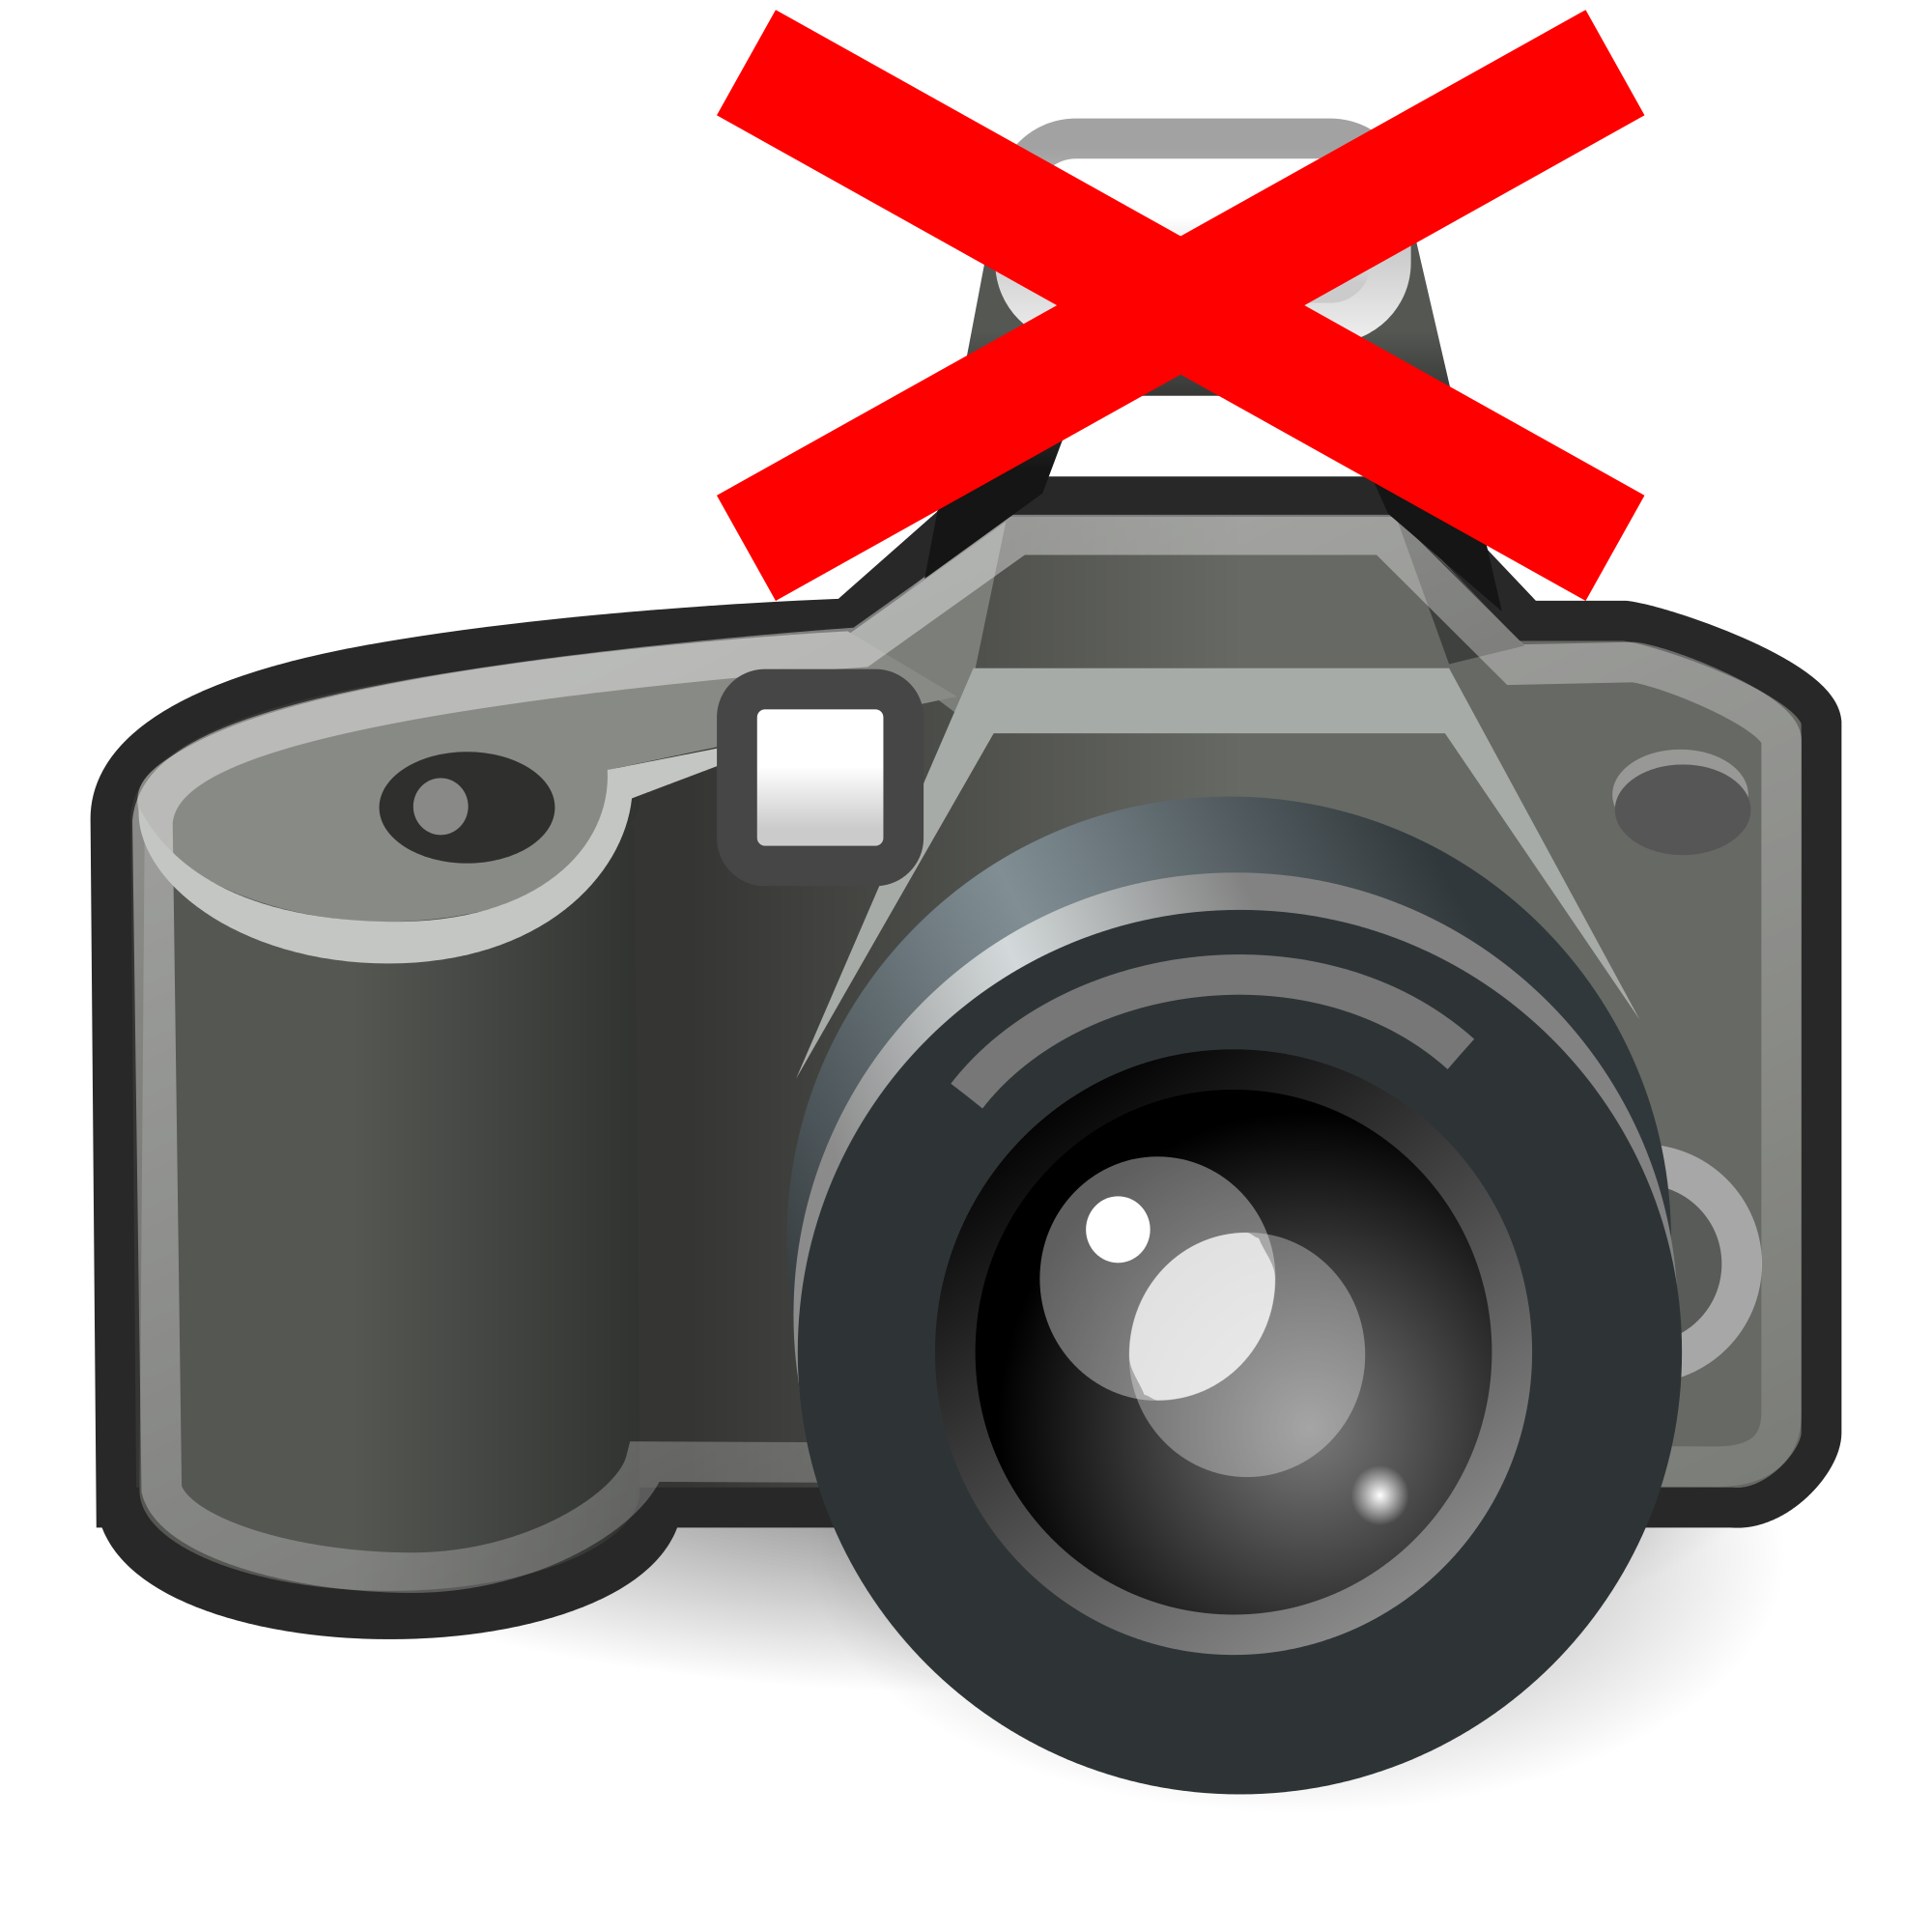 Yearbook clipart camera flash. File photo no svg